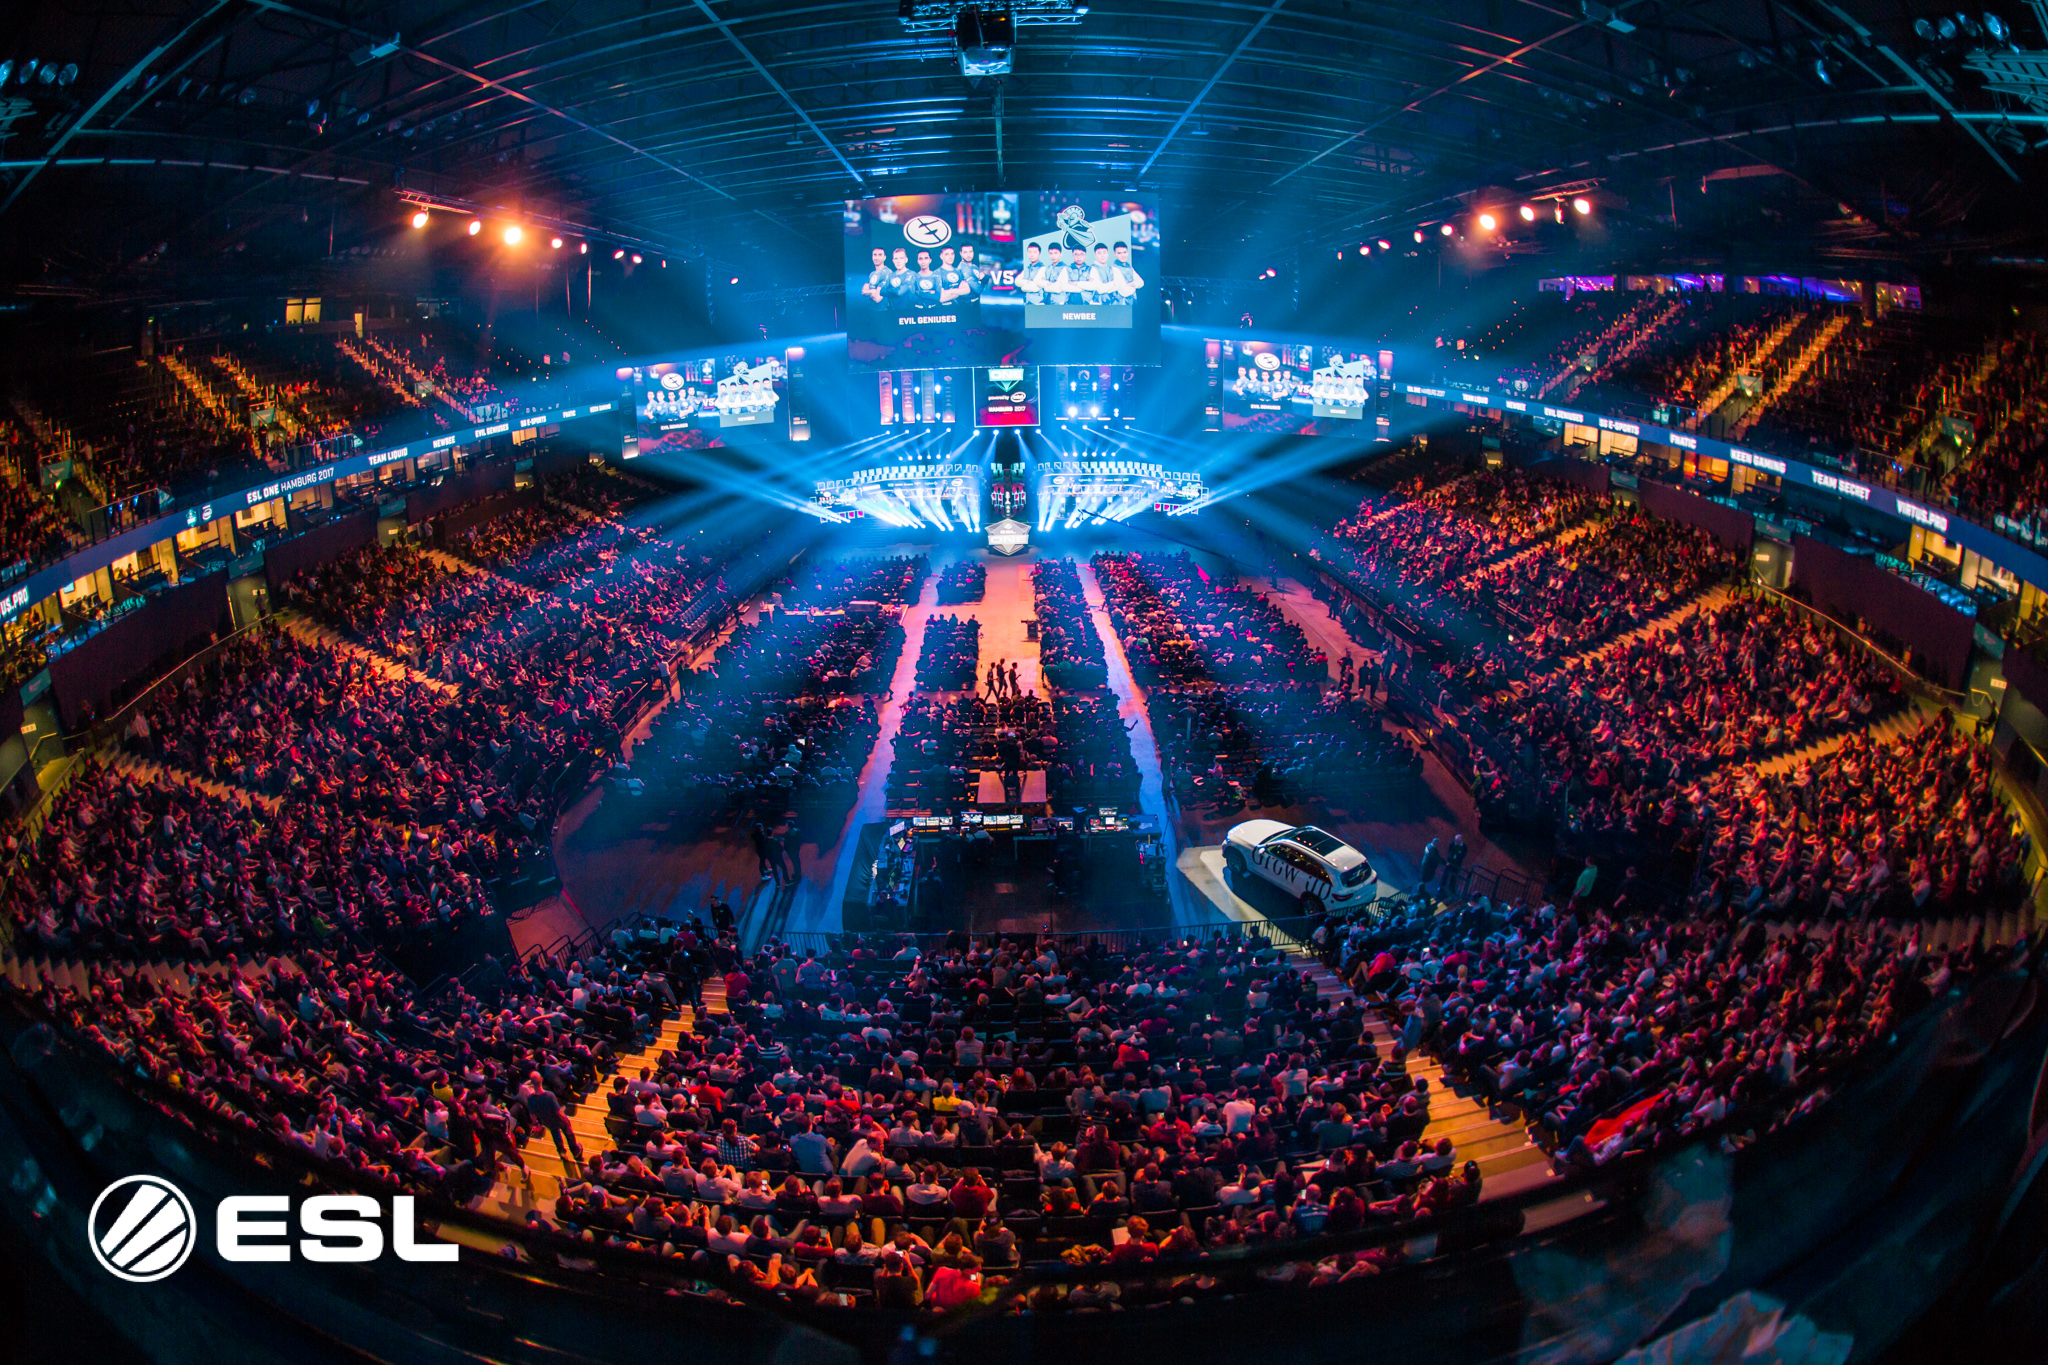 Alienware Iphone Wallpaper Esports Esl One Hamburg Mit 20 000 Fans Vor Ort Und 25